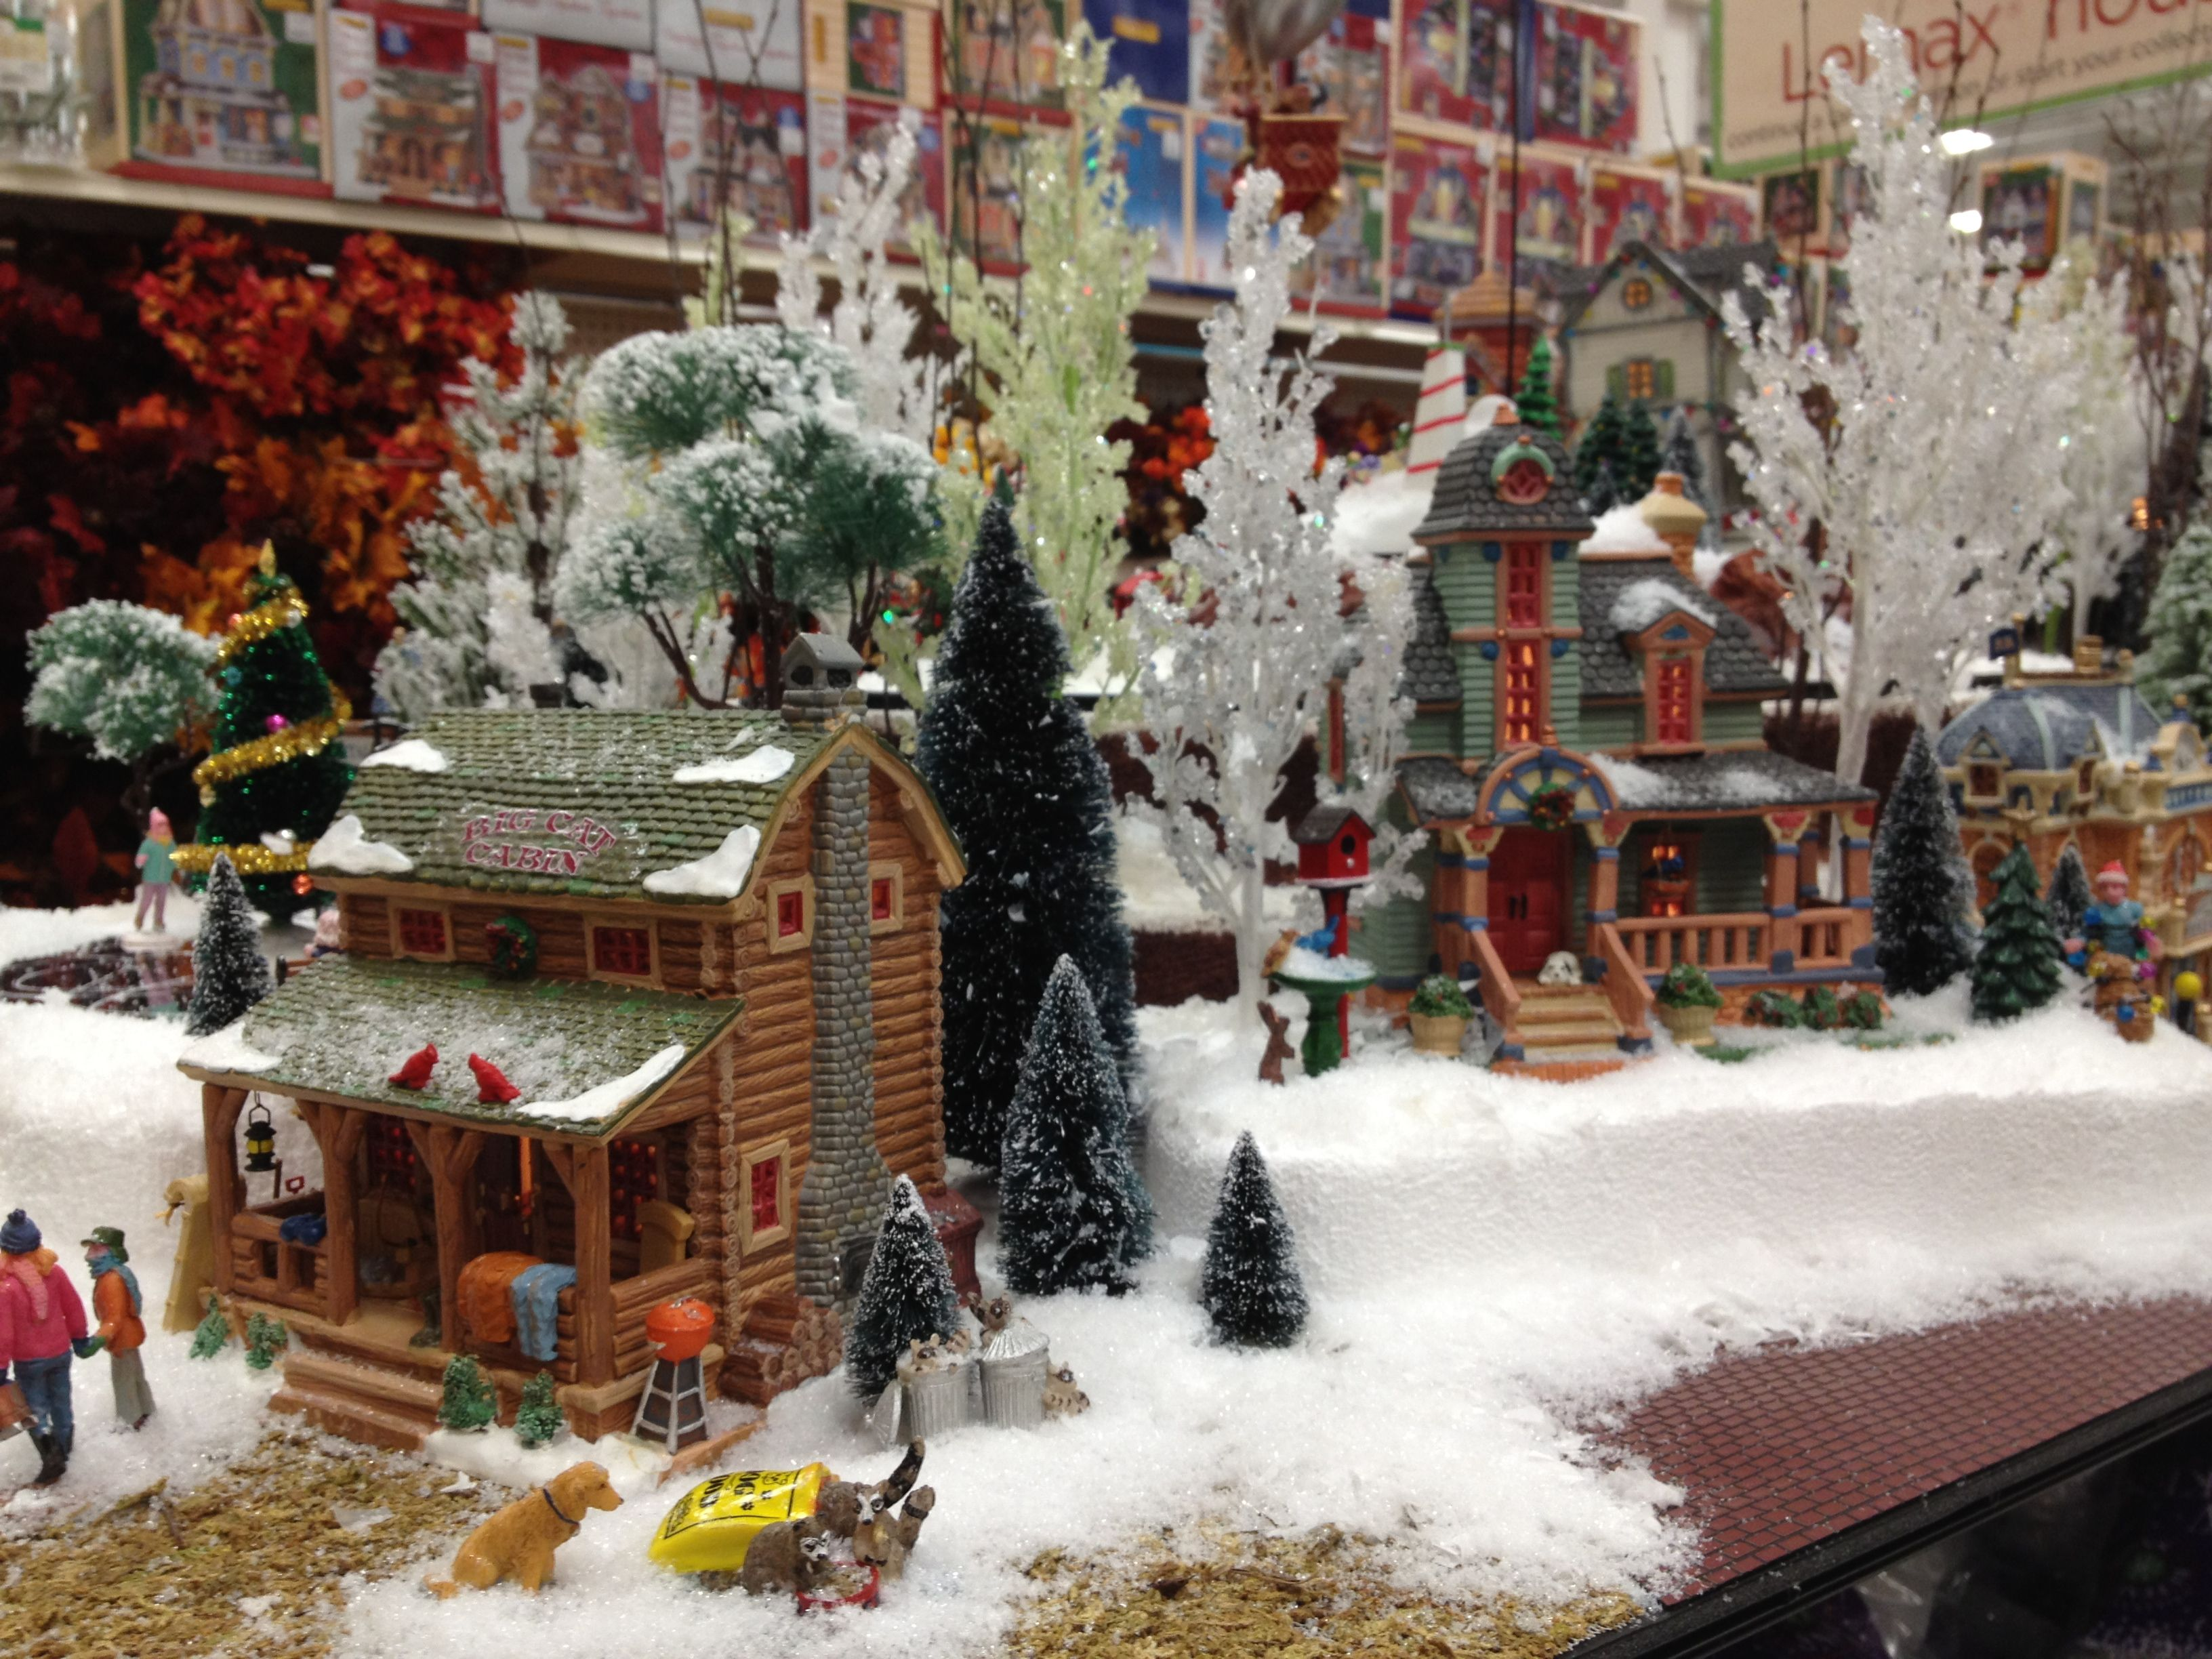 Pin by Audrey Haught on Home Dec Holidays | Pinterest | Christmas ...